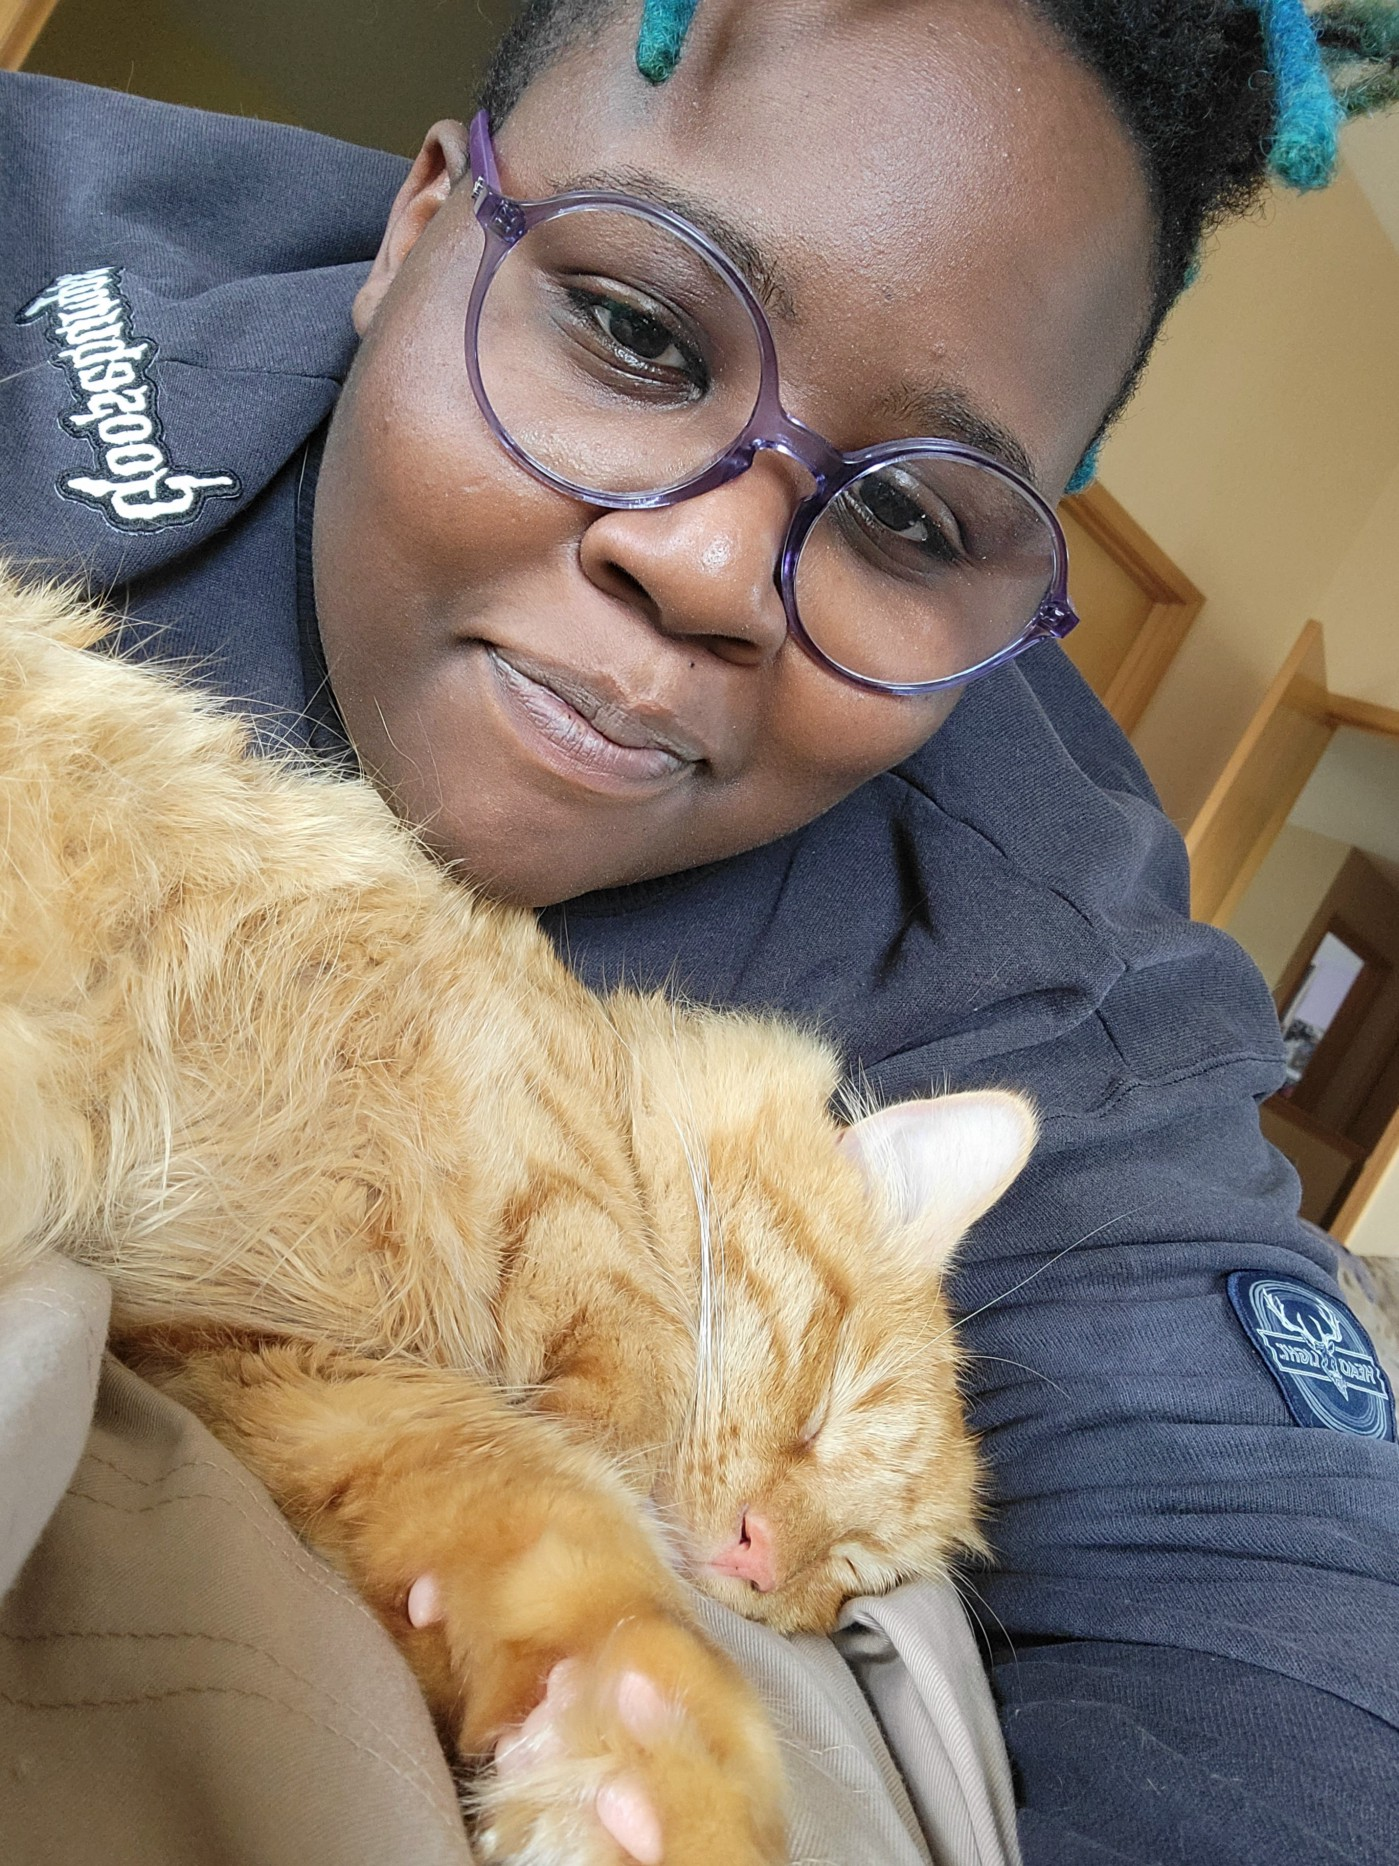 Building a Community on Medium by Aigner Loren Wilson article cover. Image of author, Aigner, behind a sleeping orange kitten. She is smiling.